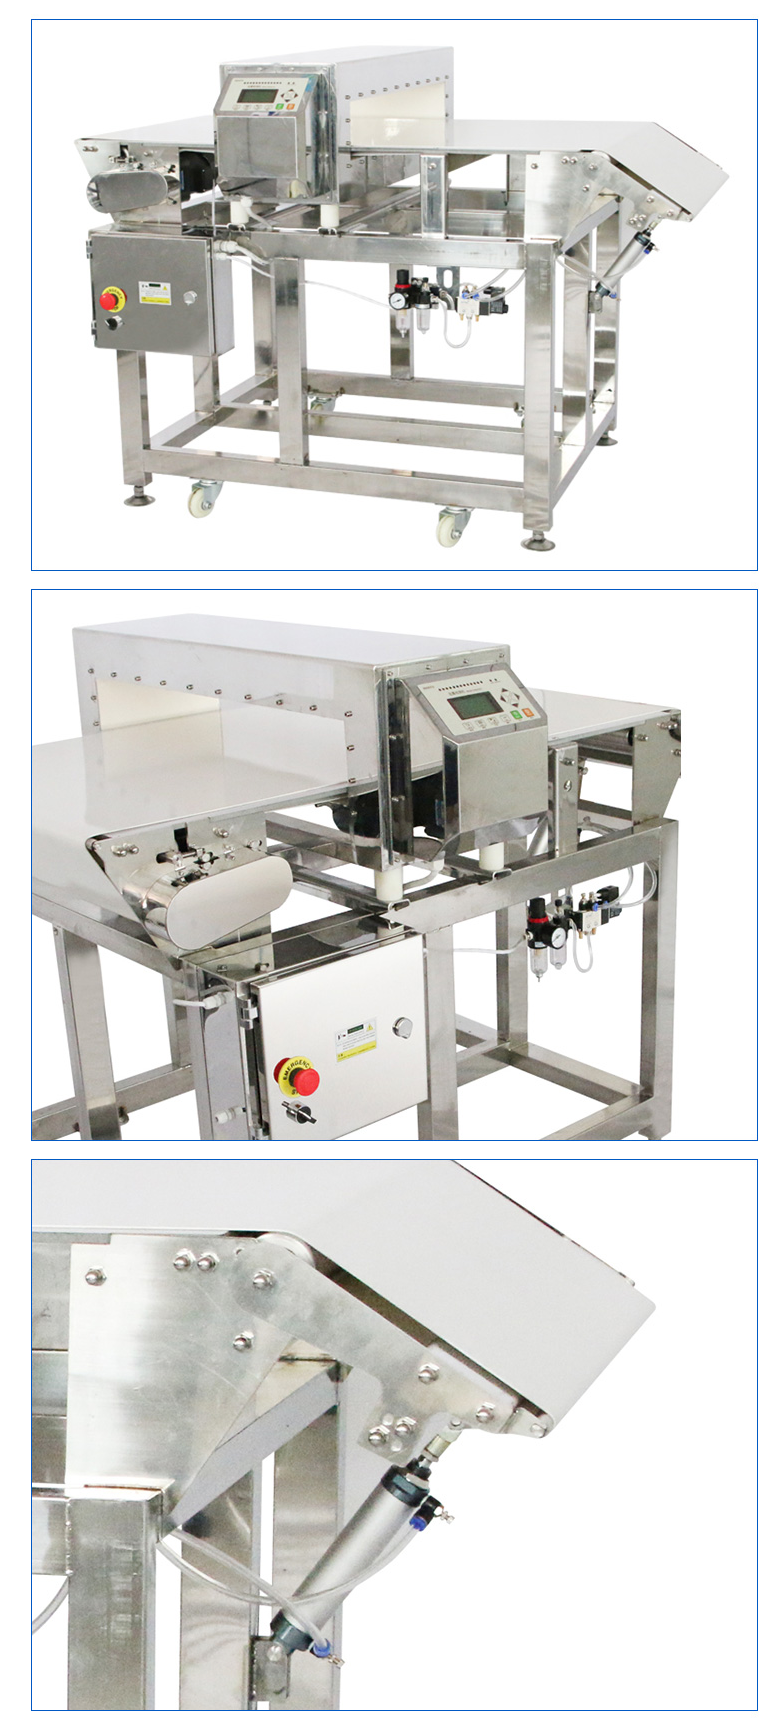 Lifting and rejecting metal detector for biscuits, bread, chocolate manufacturer factory